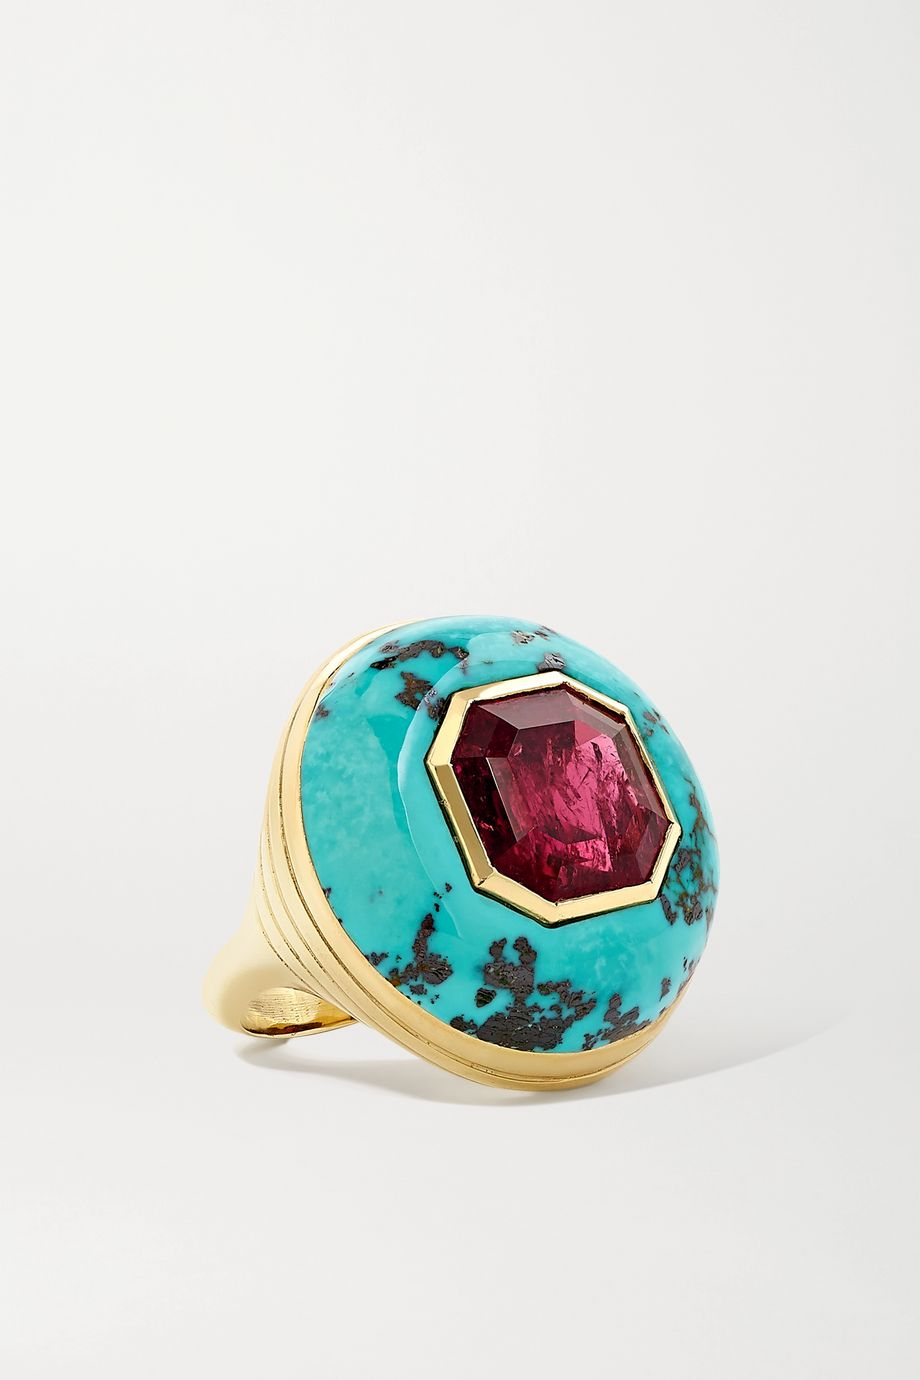 Retrouvaí Lollipop 14-karat gold, turquoise and tourmaline ring